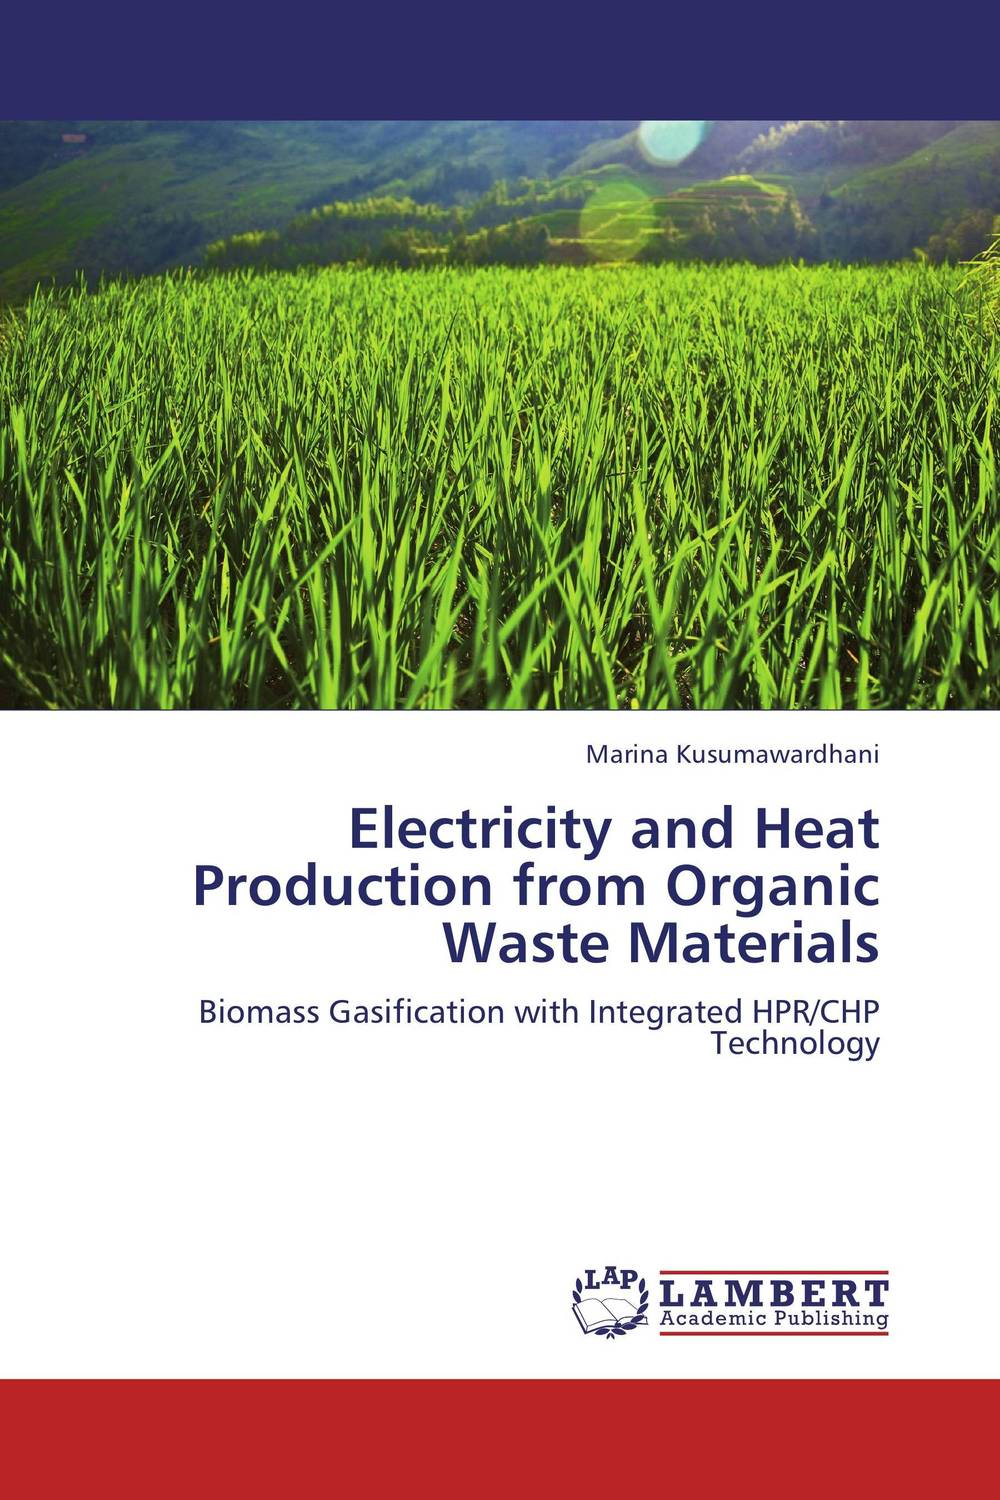 Electricity and Heat Production from Organic Waste Materials amal owis and yasser el tahlawy residues and wastes biomass in egypt